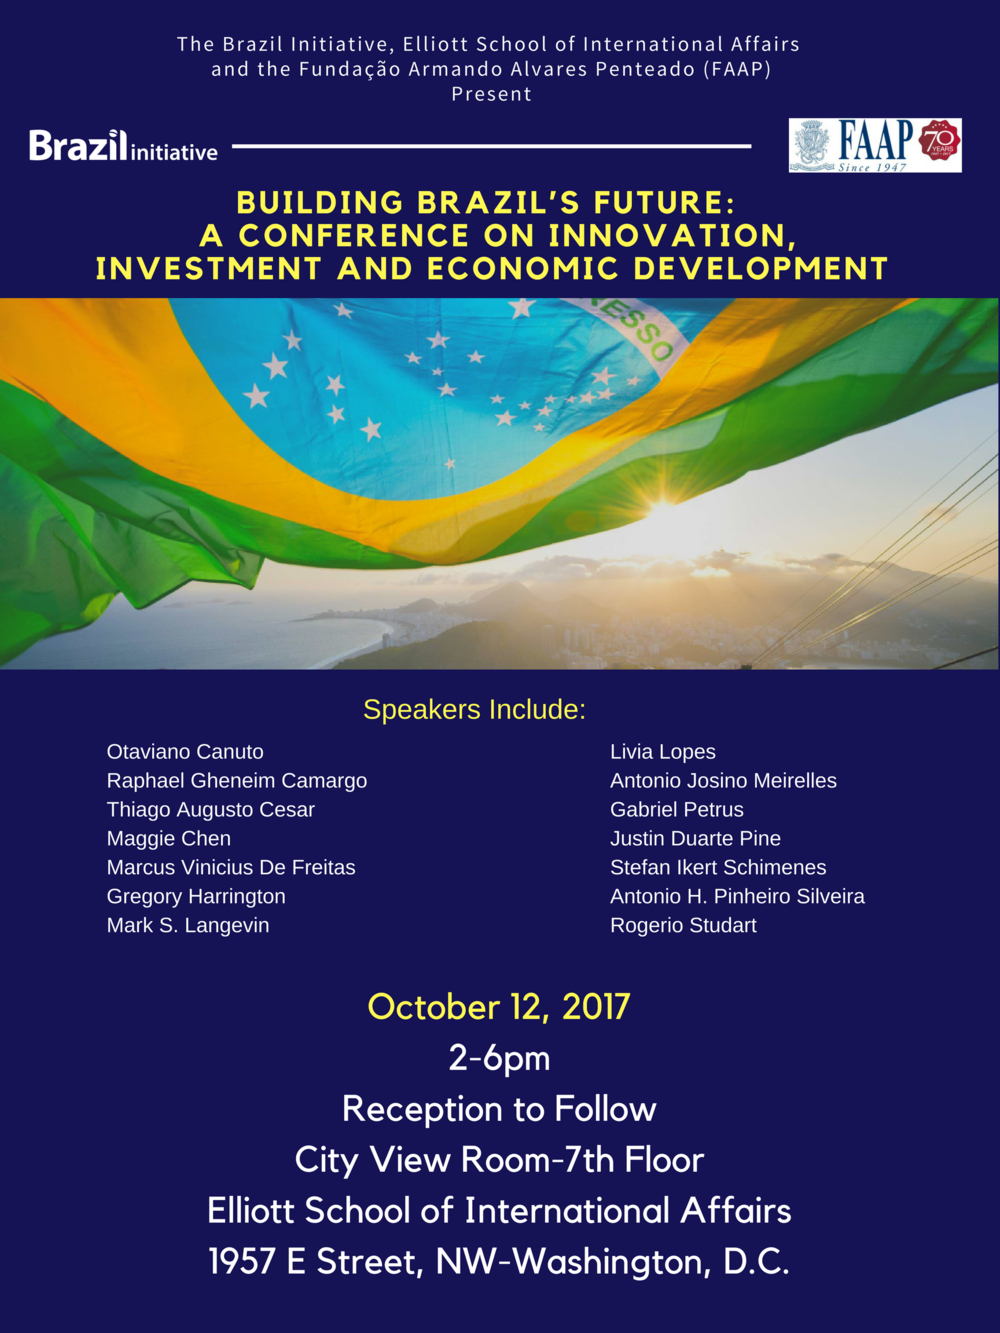 9 19 Building Brazil's Future- A Conference on Innovation, Investment and Economic Development.png